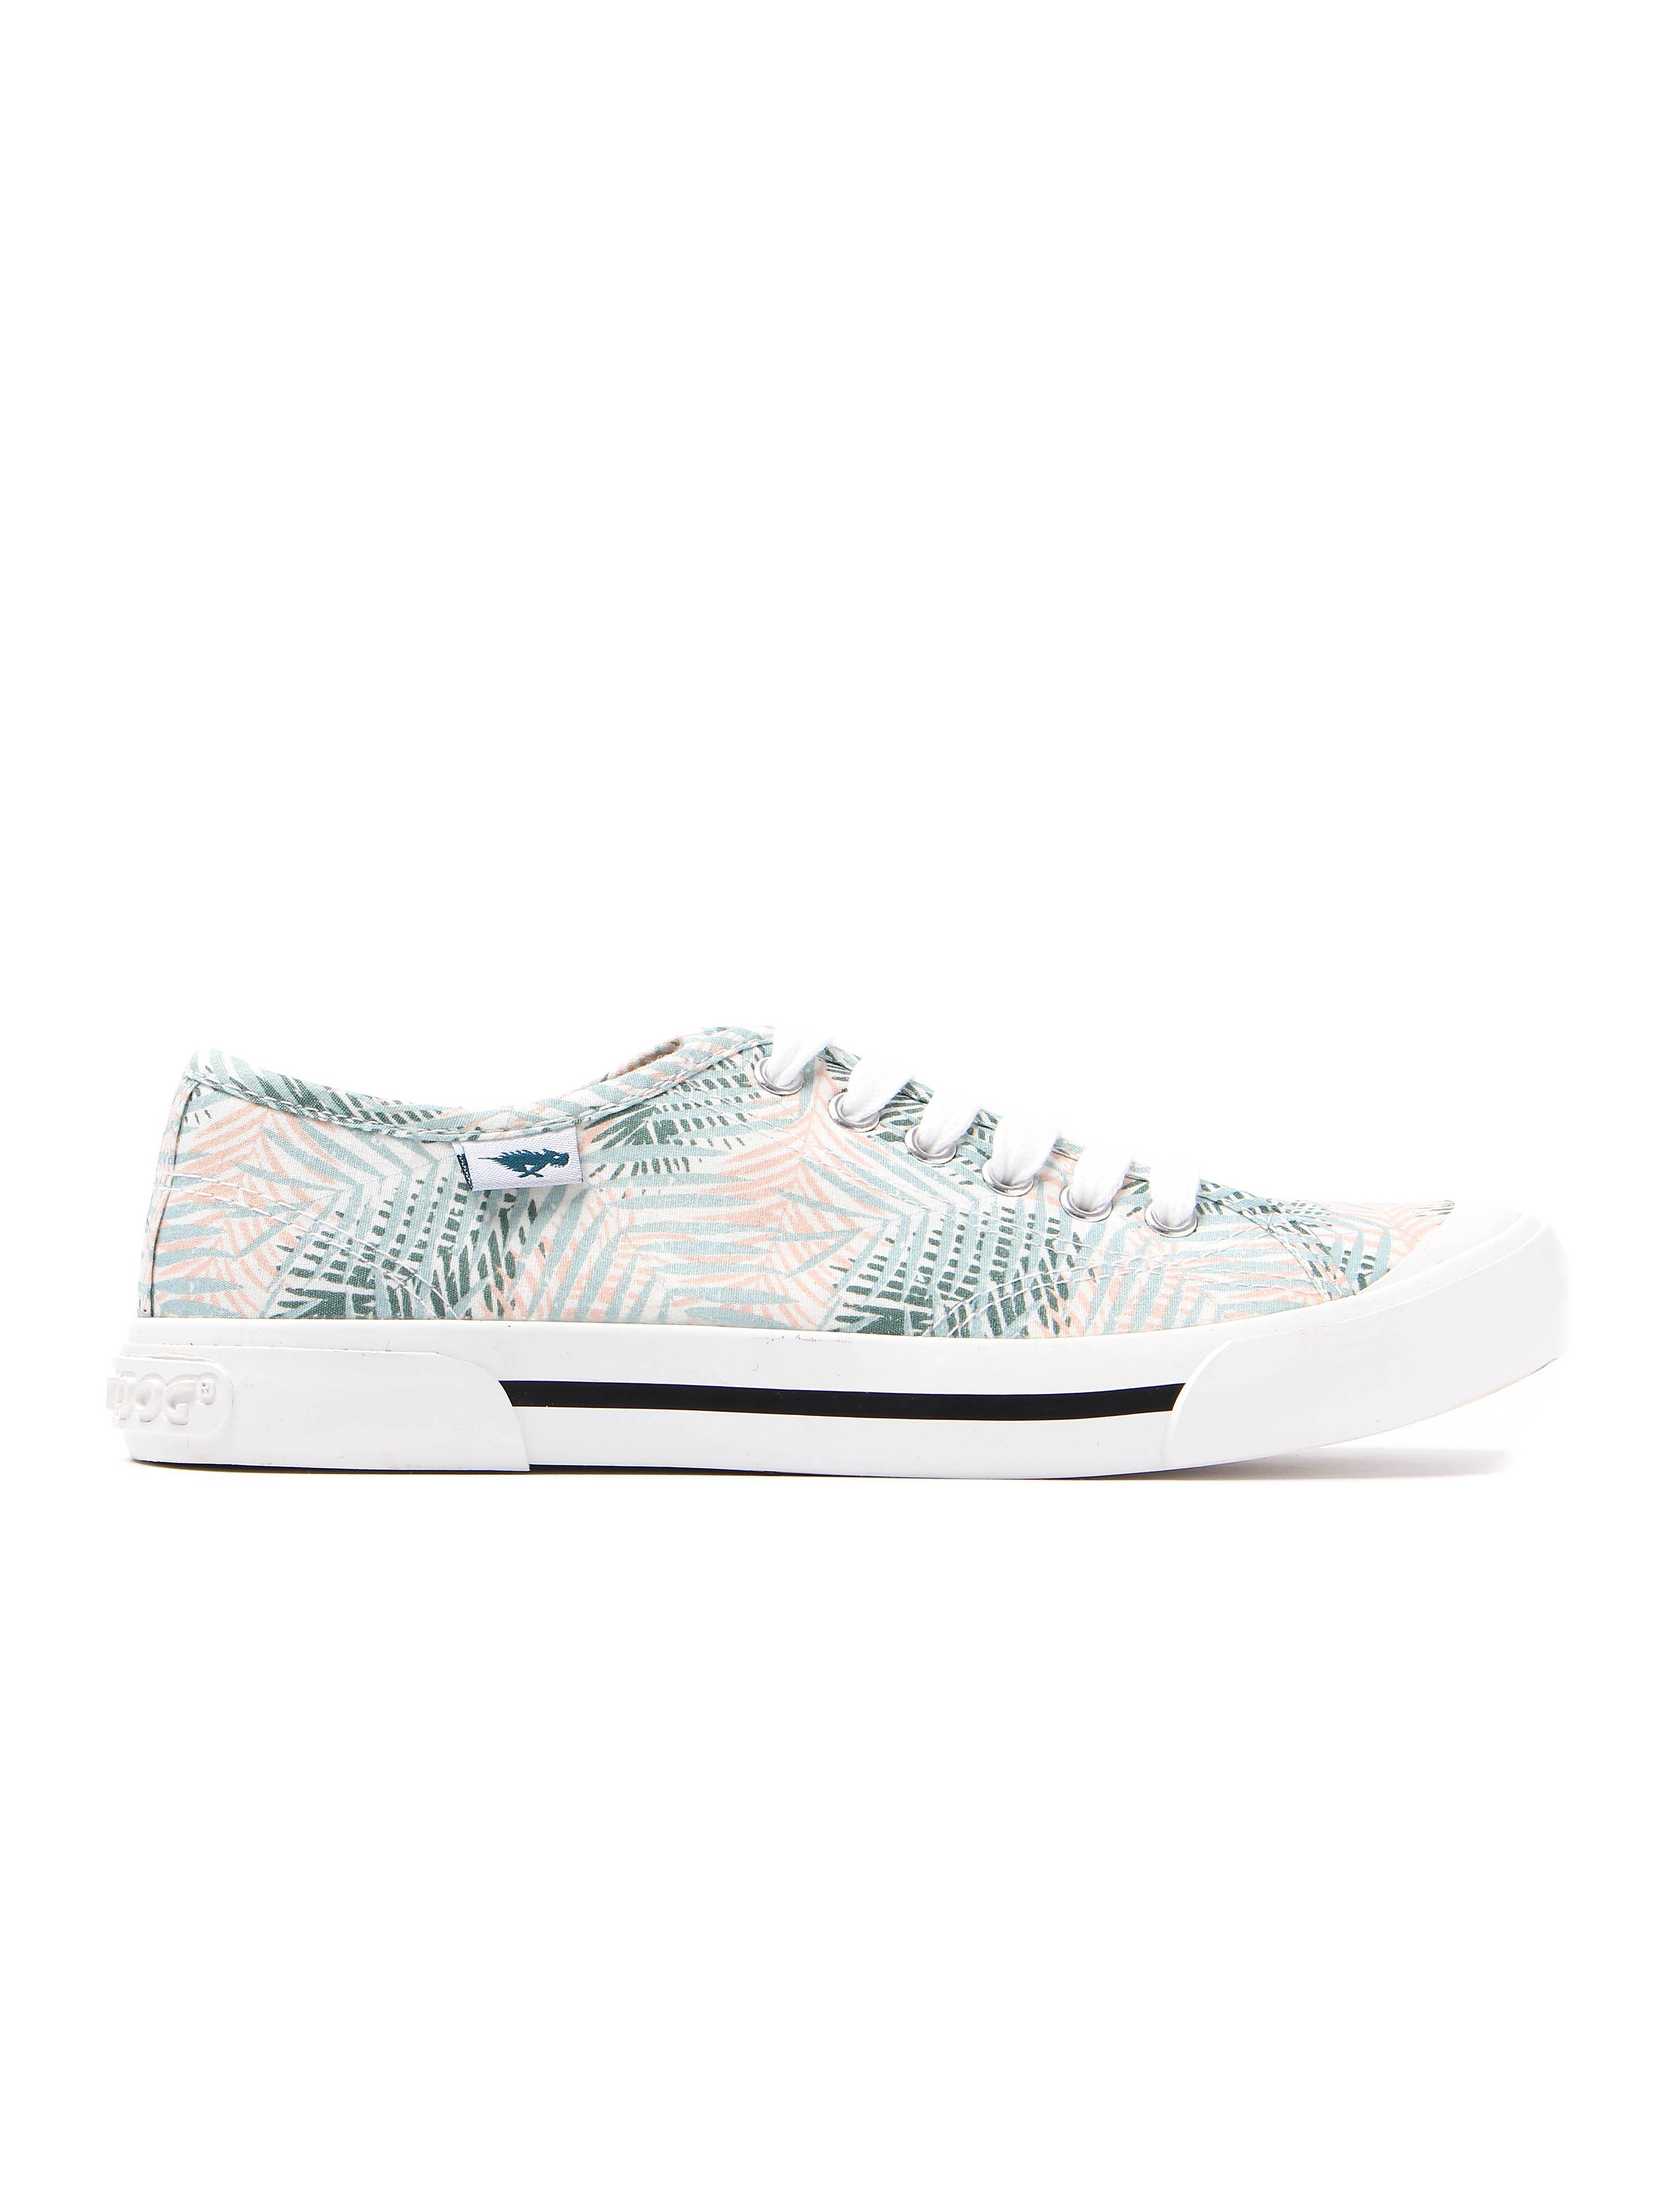 Rocket Dog Women's Jumpin Jungle Low Top Trainers - Palm